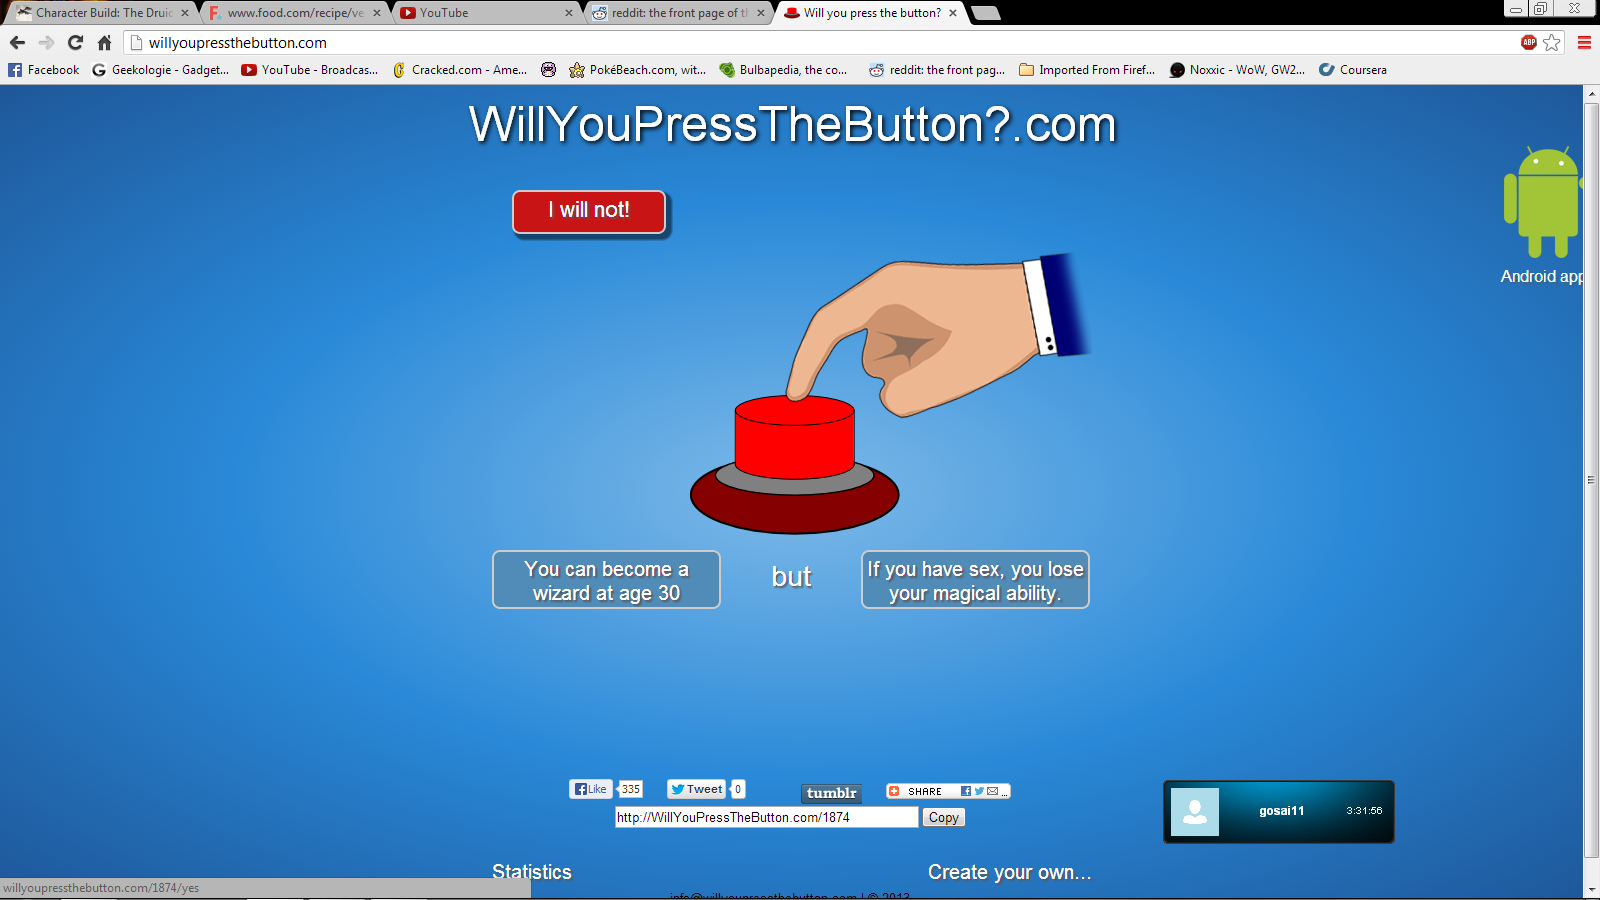 [Image - 622015] | Will You Press The Button? | Know Your Meme